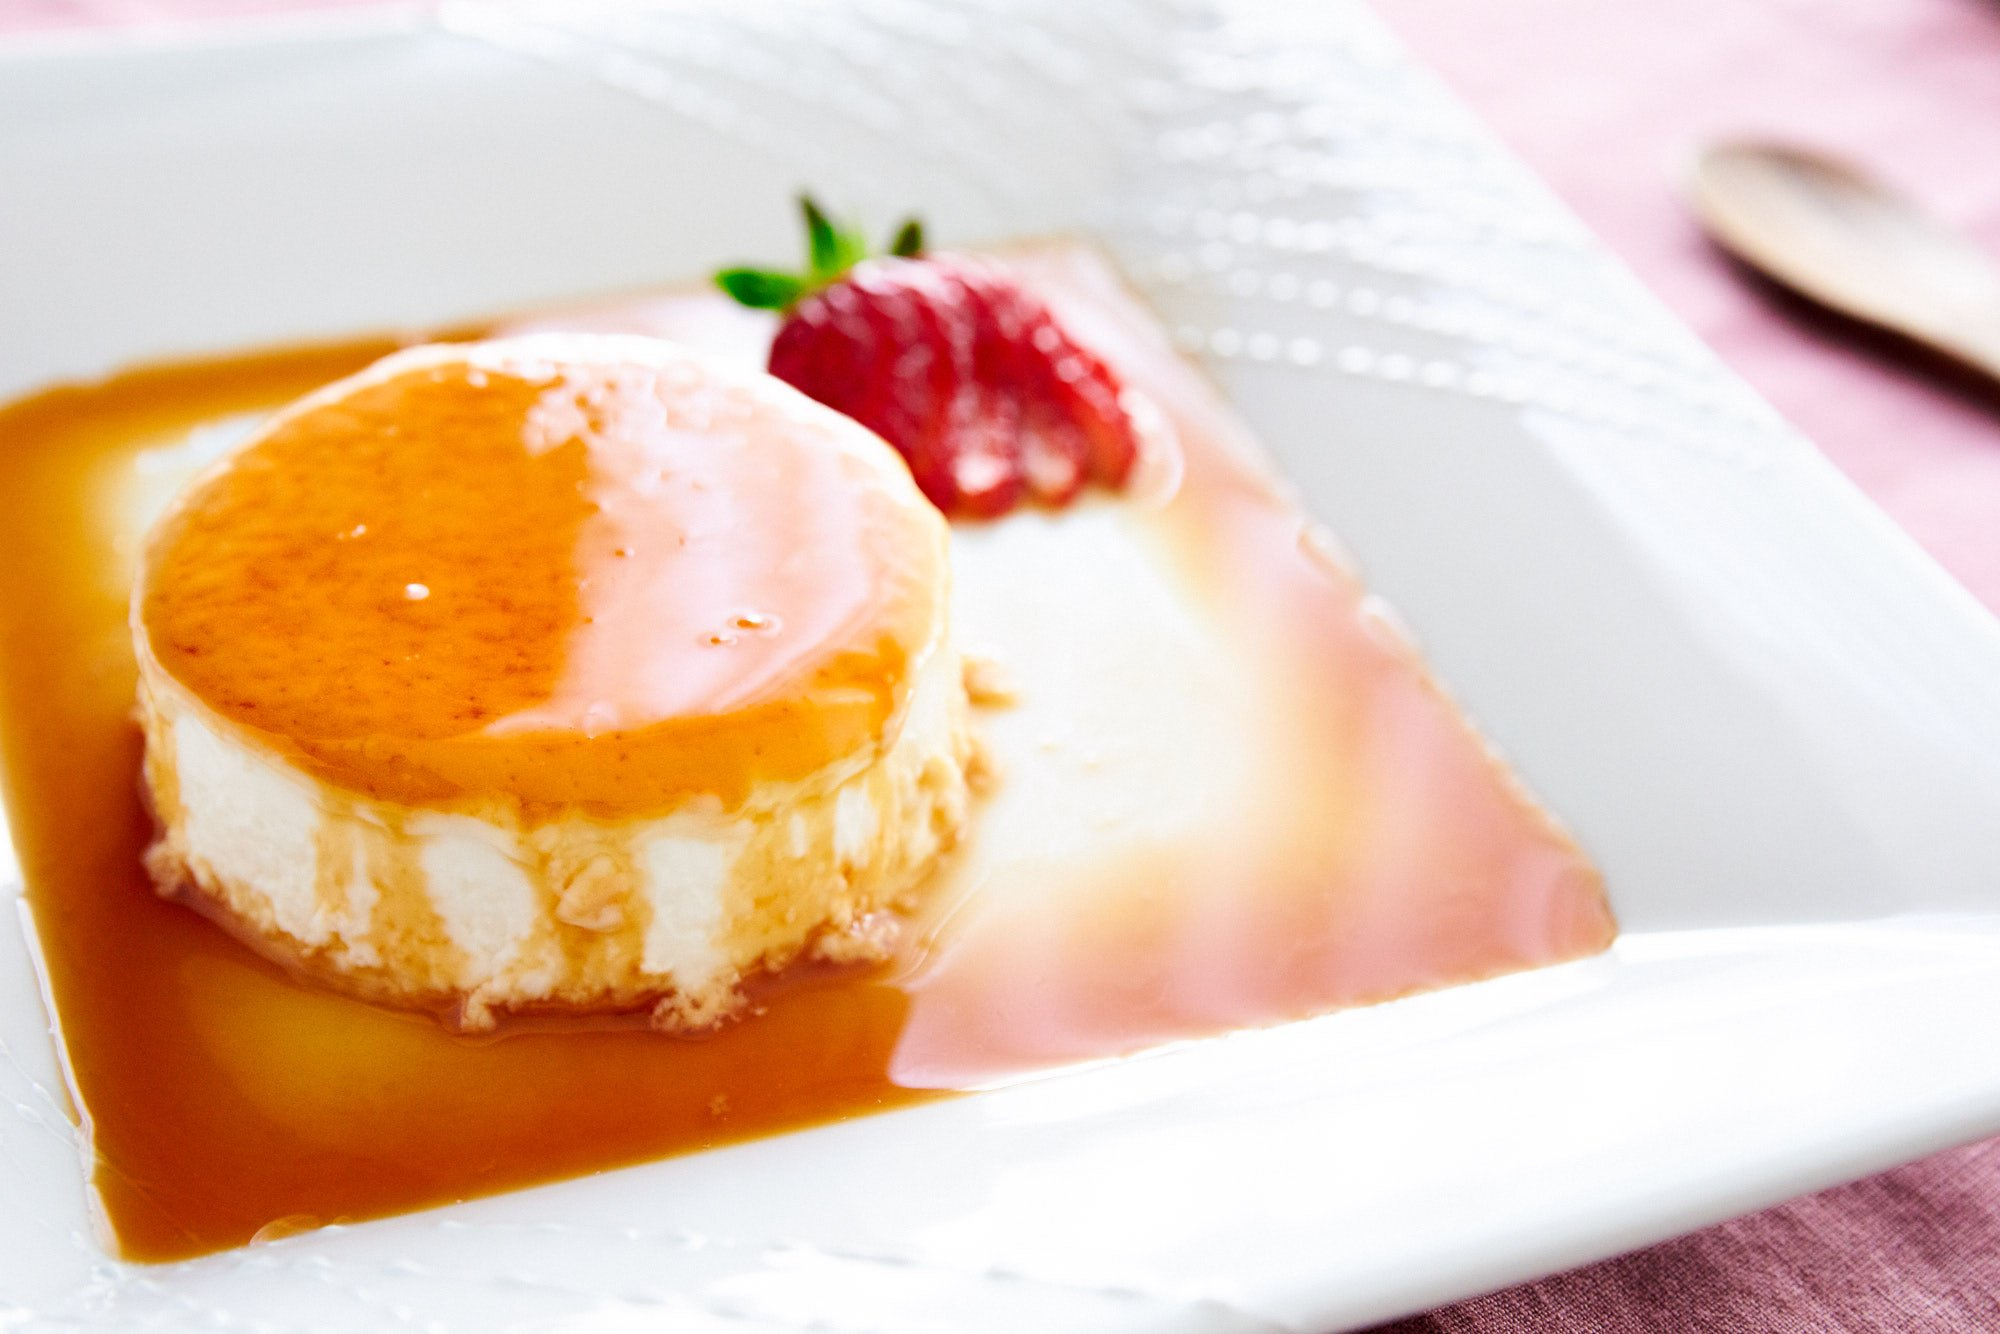 This creamy panna cotta melts in your mouth like butter.